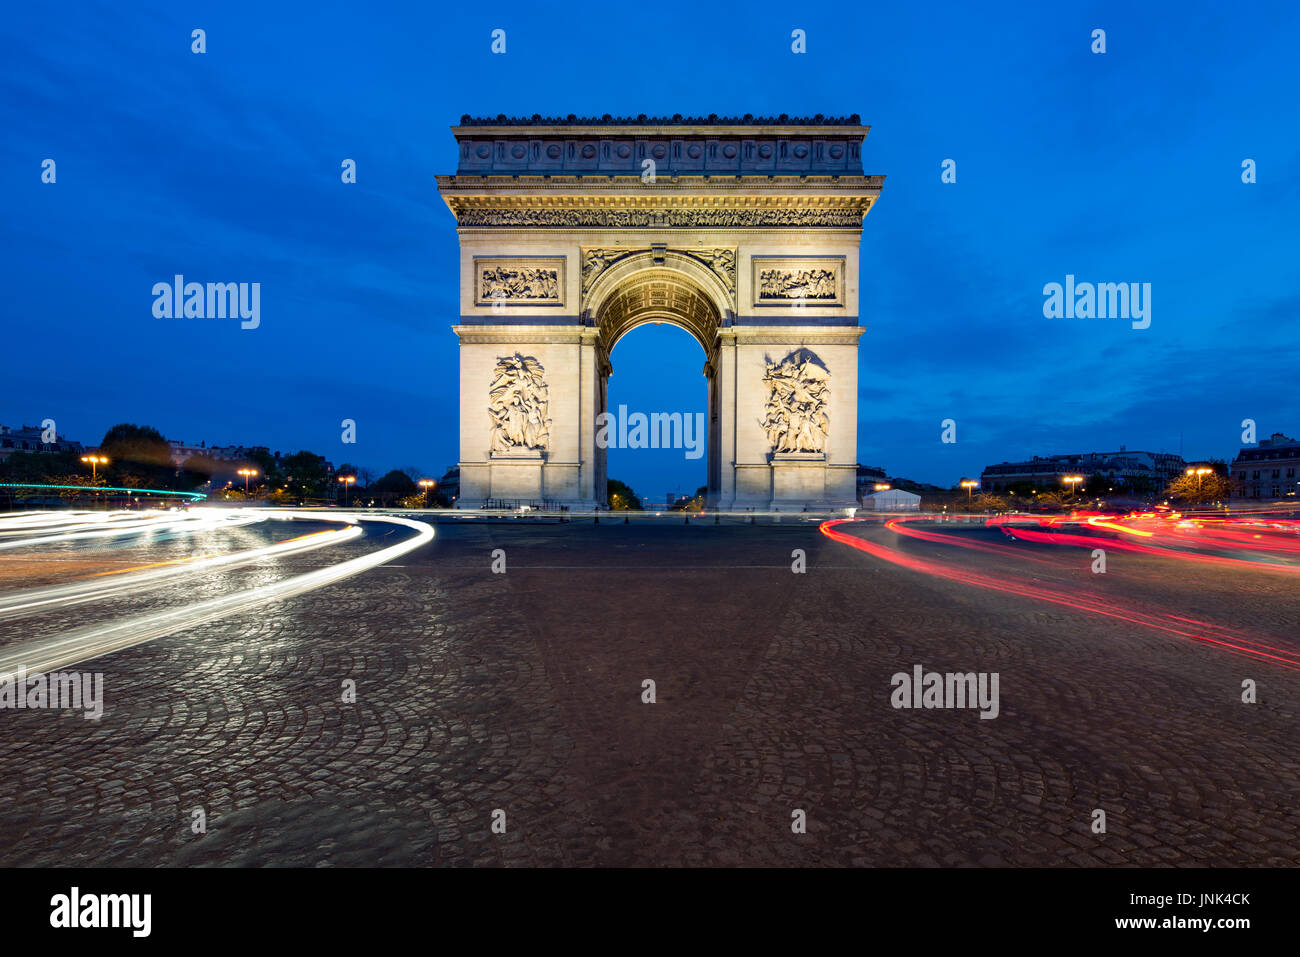 Paris street at night with the Arc de Triomphe in Paris, France. - Stock Image